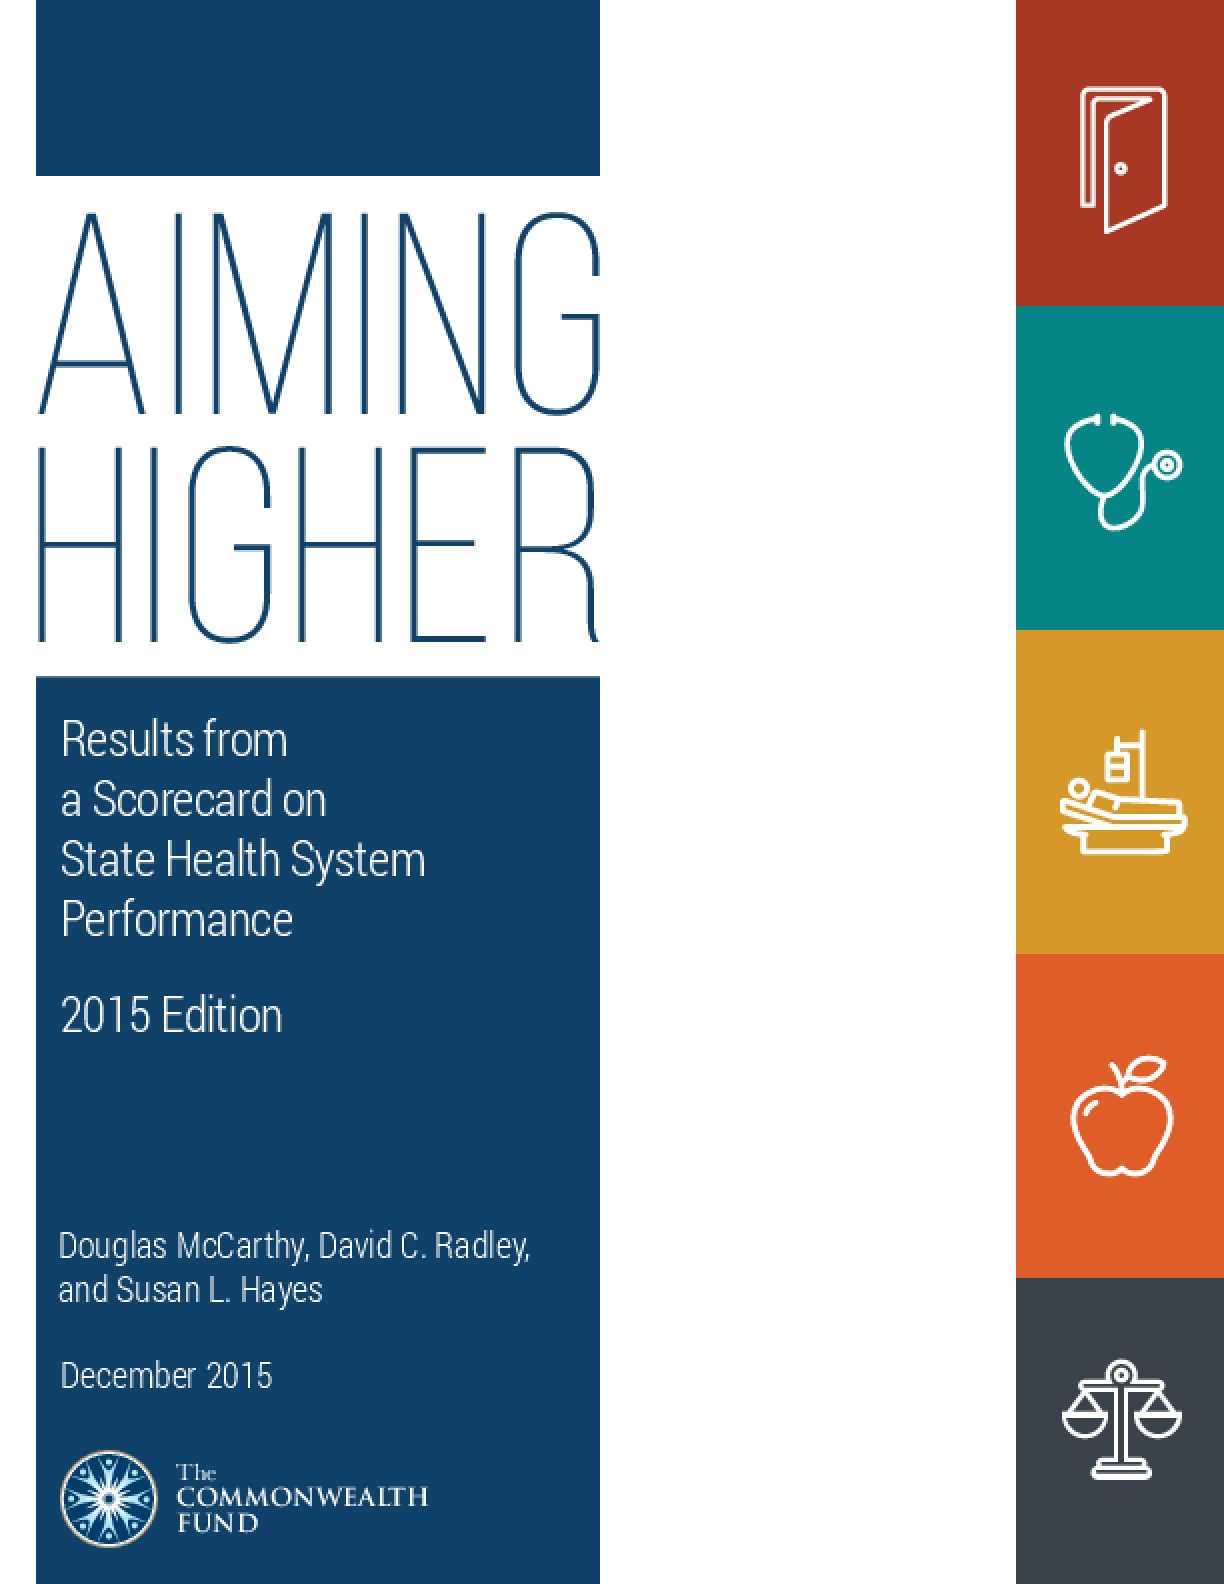 Aiming Higher: Results from a Scorecard on State Health System Performance, 2015 Edition